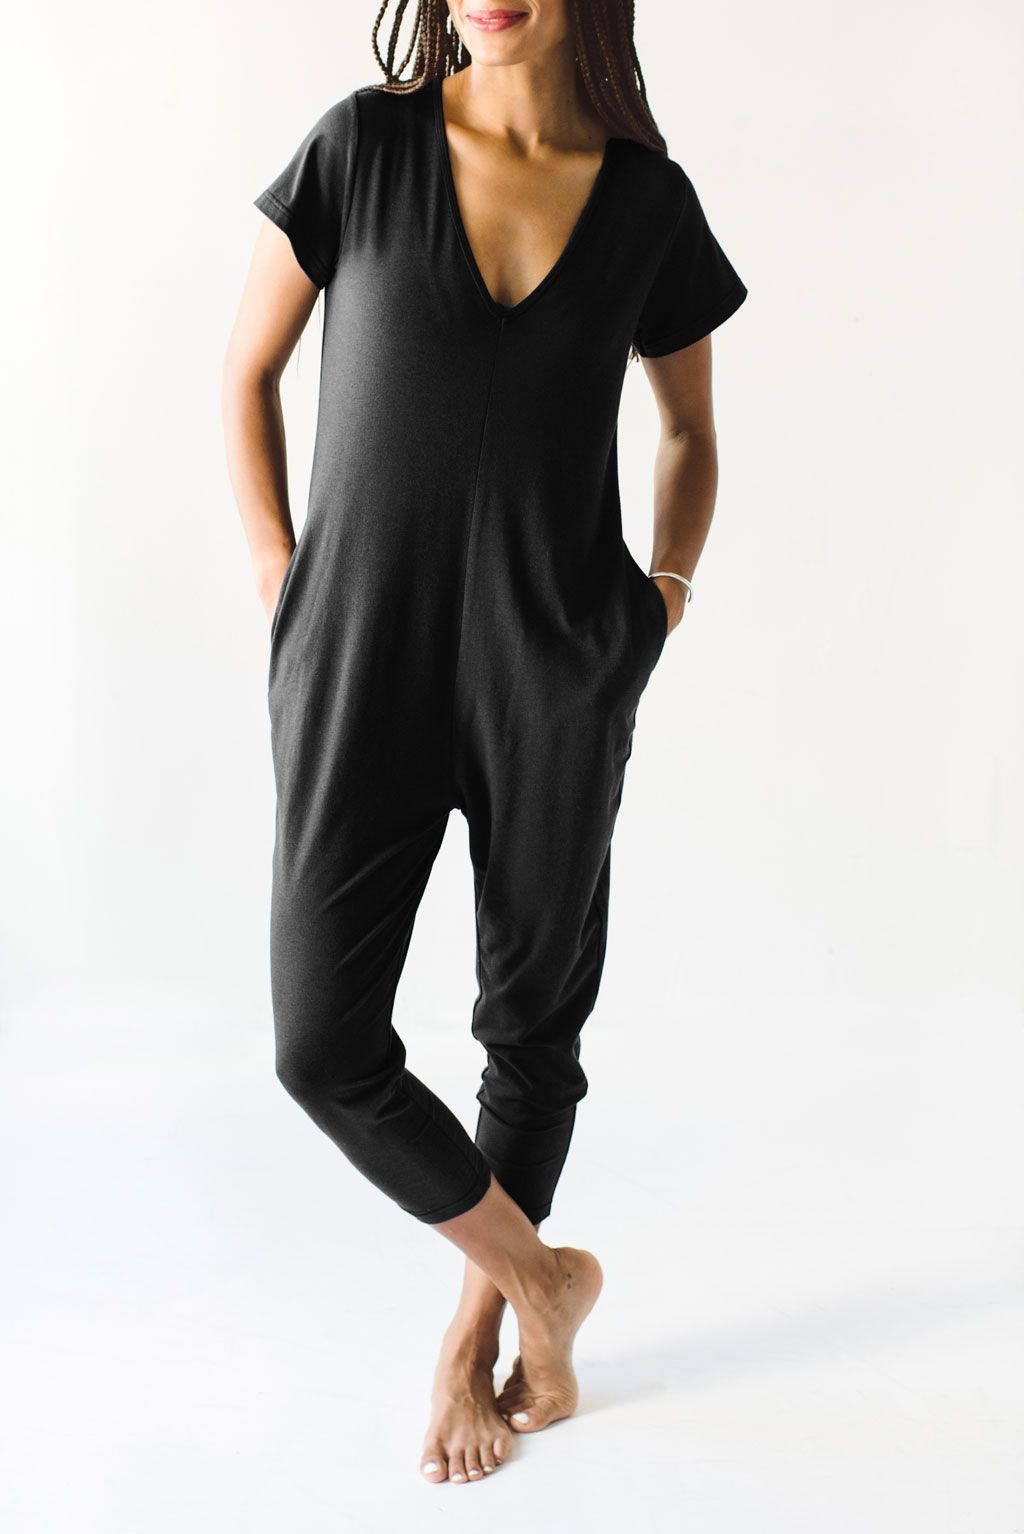 Products | Smash + Tess | Lounge wear, Womens loungewear, Short sleeve  romper